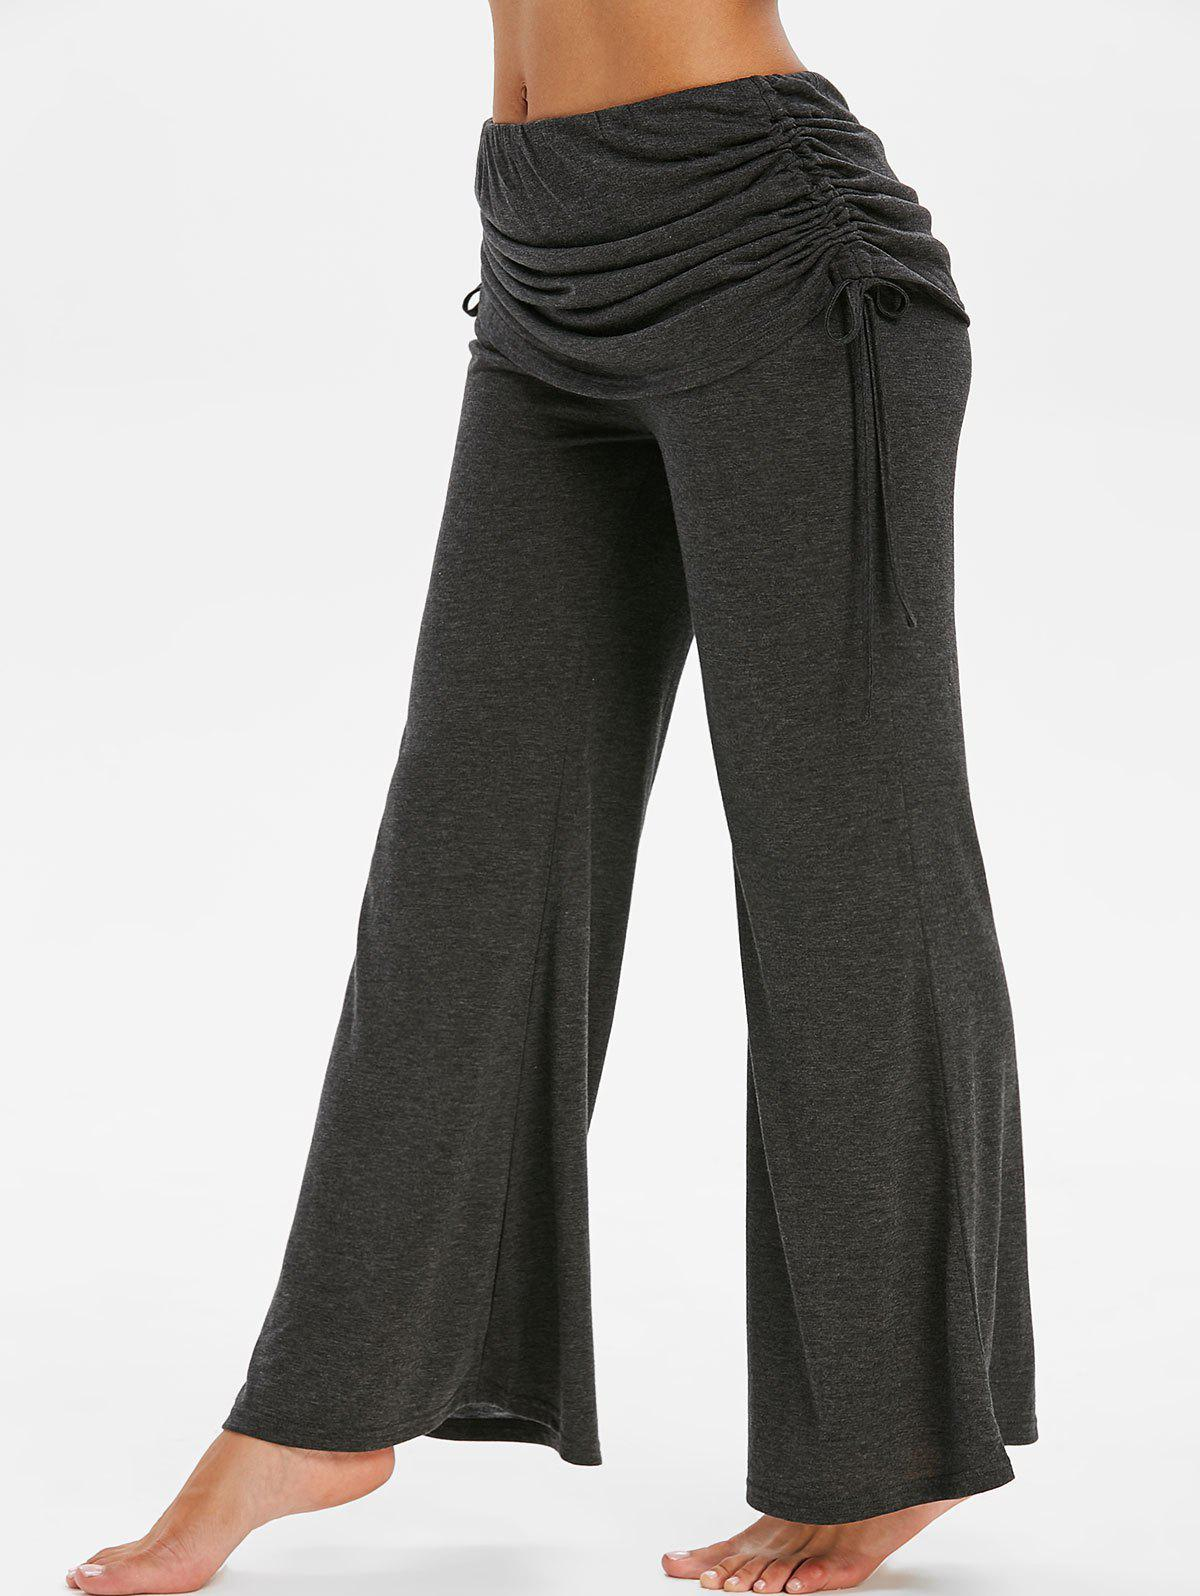 Space Dye Print Cinched Fold Over Flare Pants - DARK SLATE GREY M